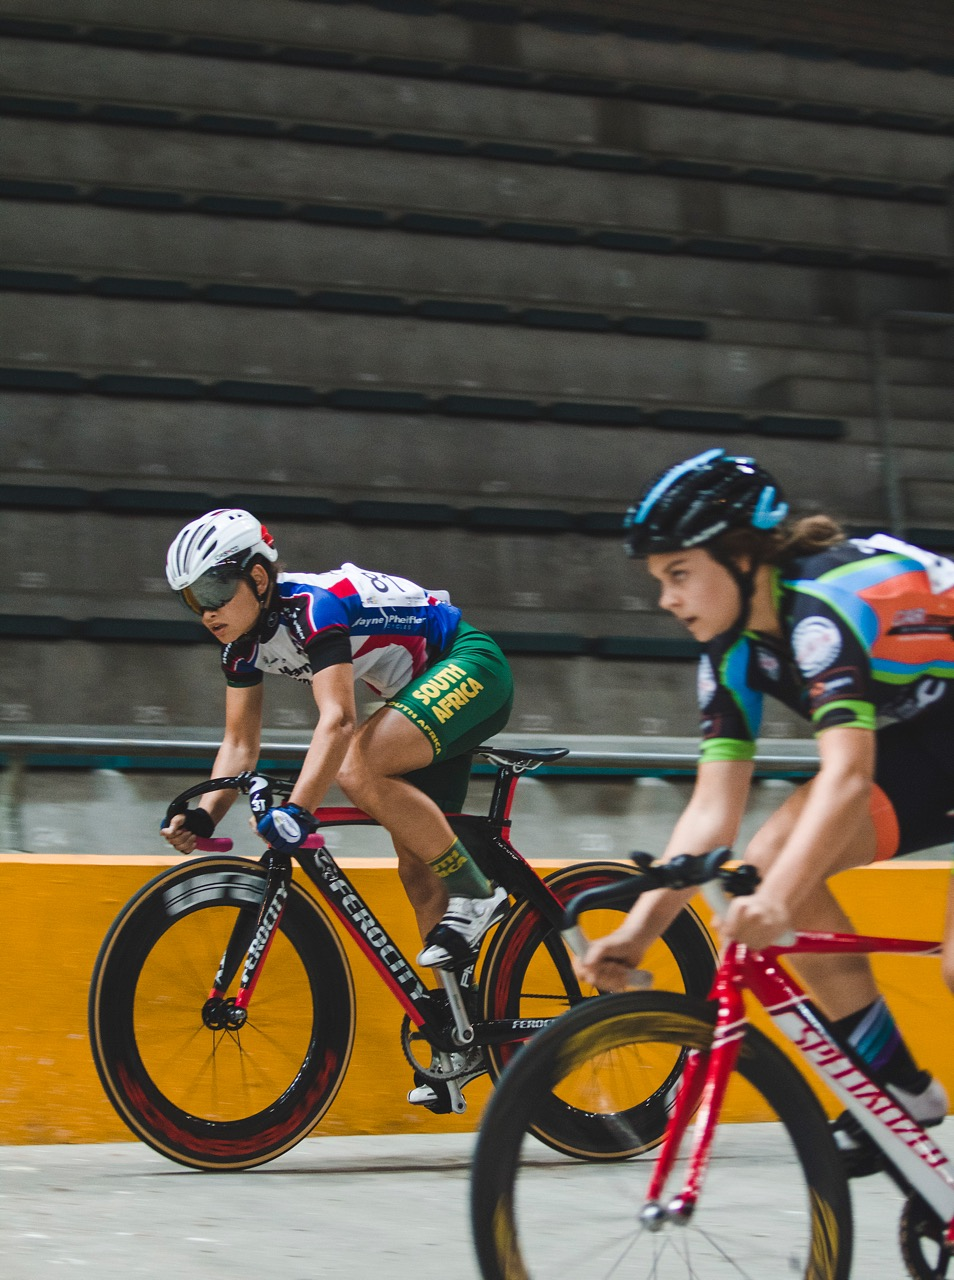 Jessica Brown (left) and Courtney Smith broke the Junior Women's Team Sprint Record at the 2017 SA National Championships in the Western Cape on Thursday 6 April. Photo: DoubleST